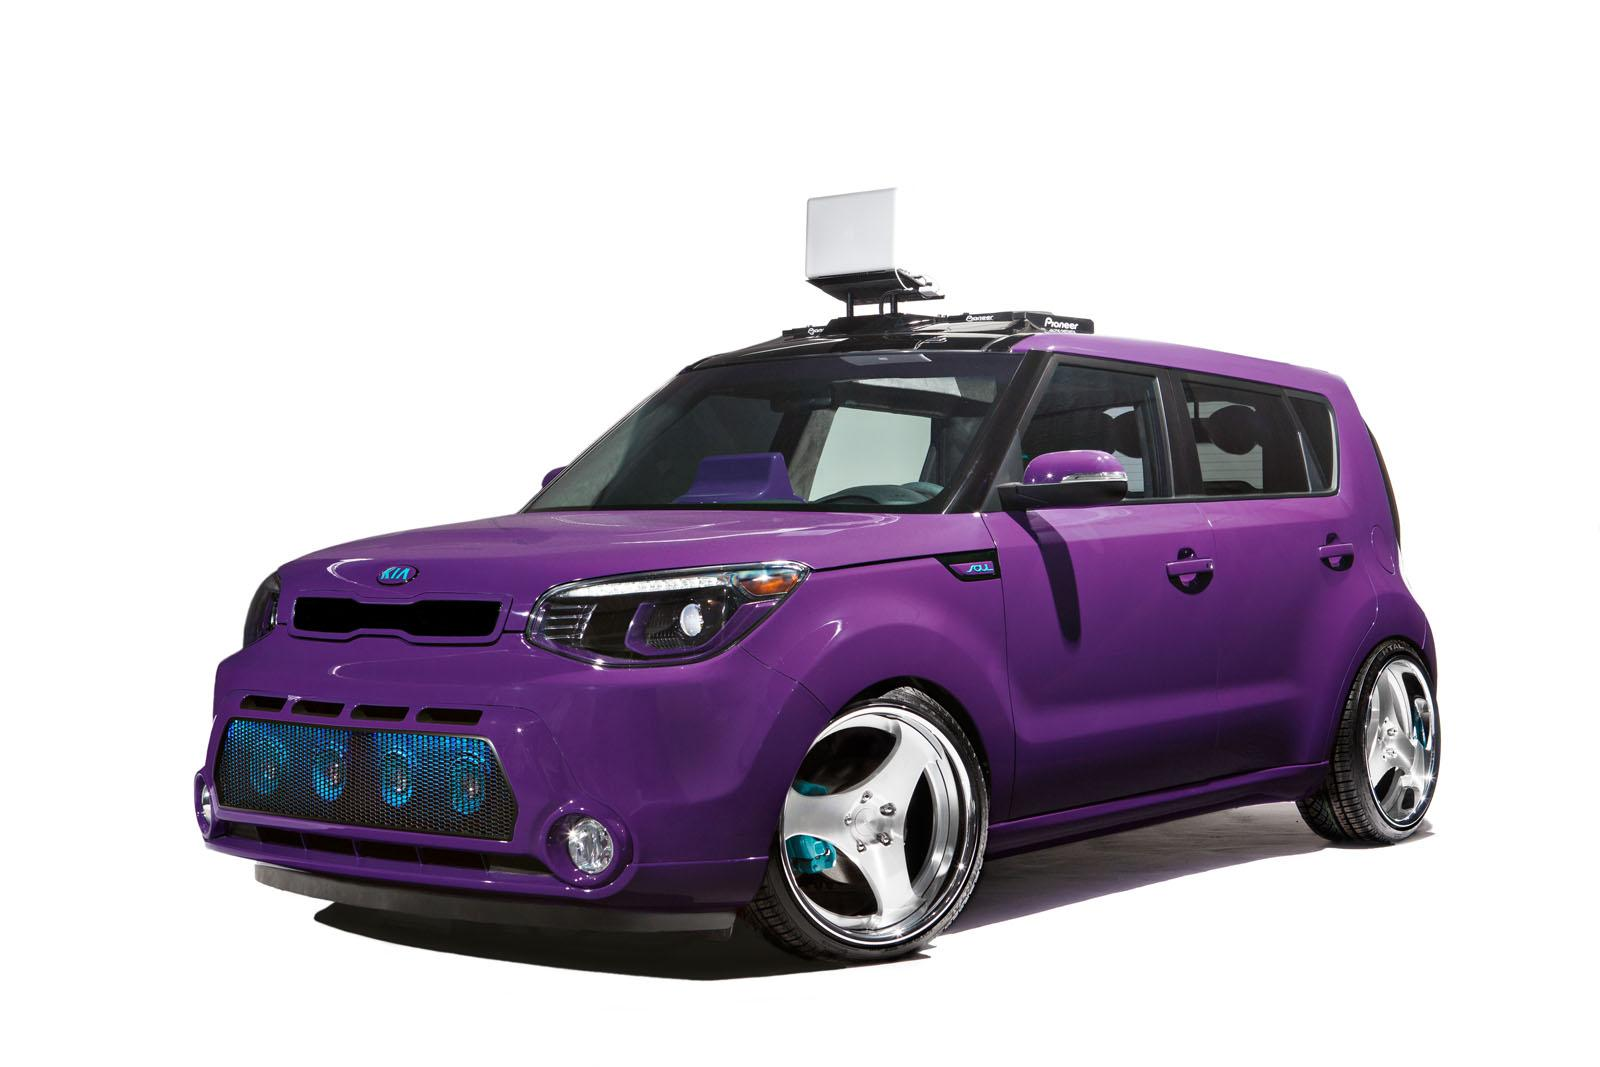 2014 Kia Dj Booth Soul Top Speed